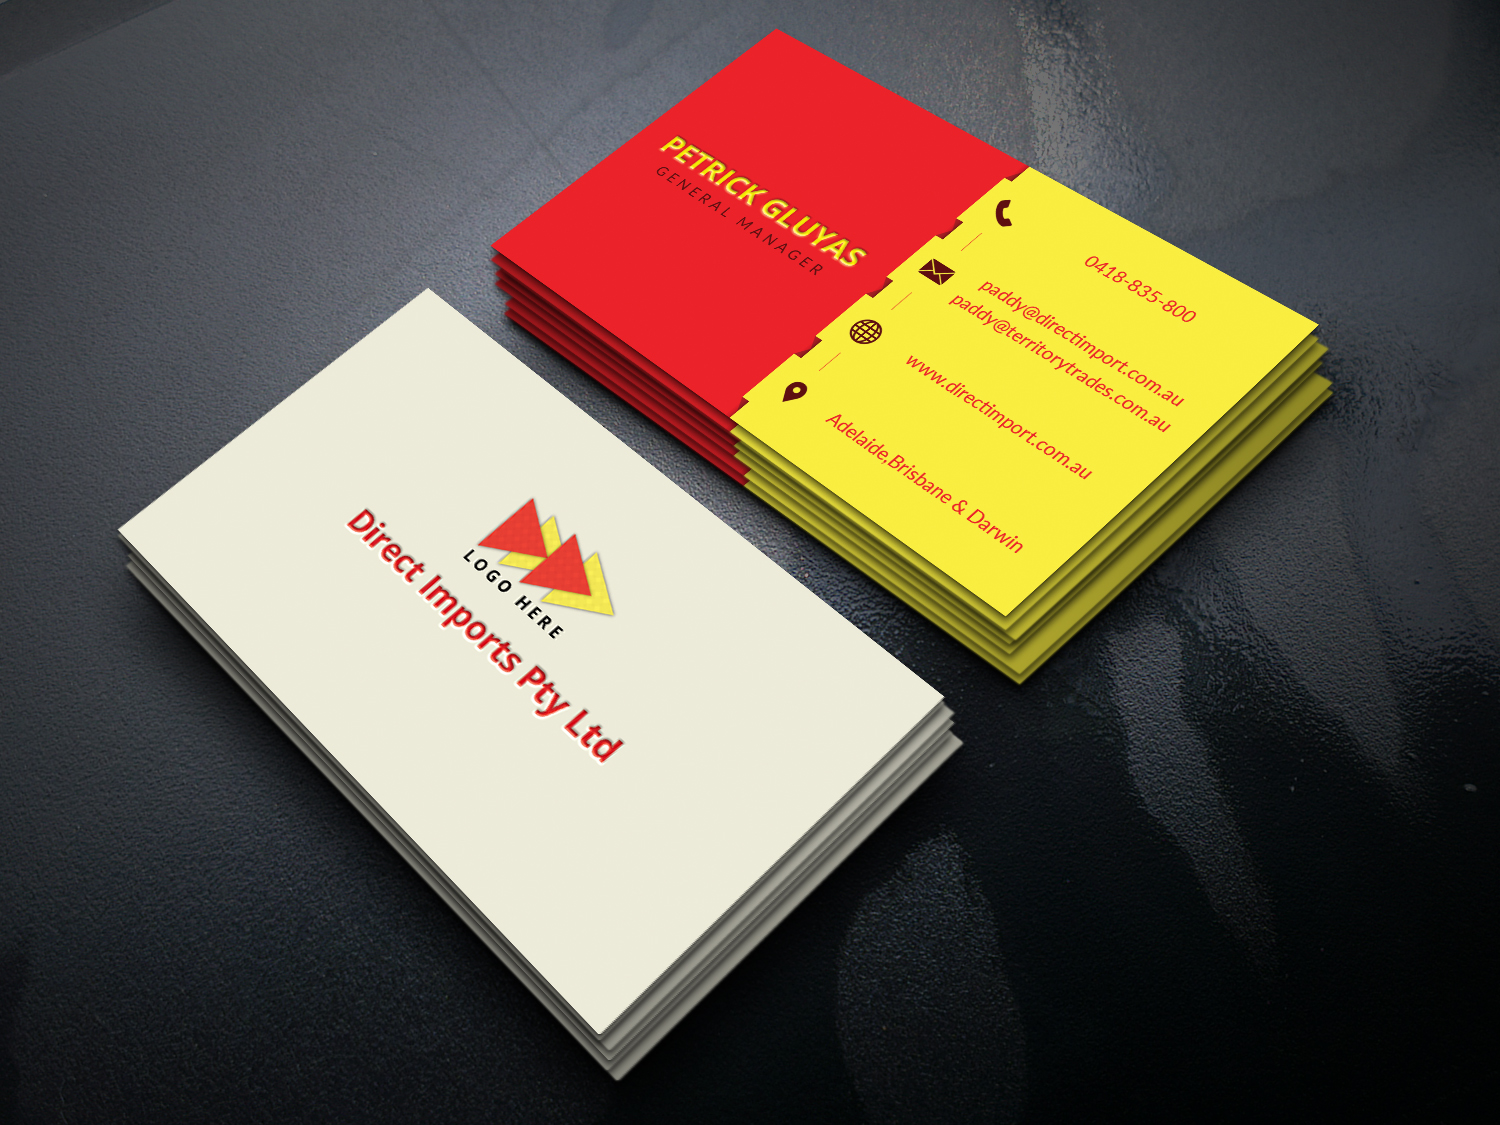 Upmarket modern business business card design for a company by business card design by momoothoi for this project design 14469581 colourmoves